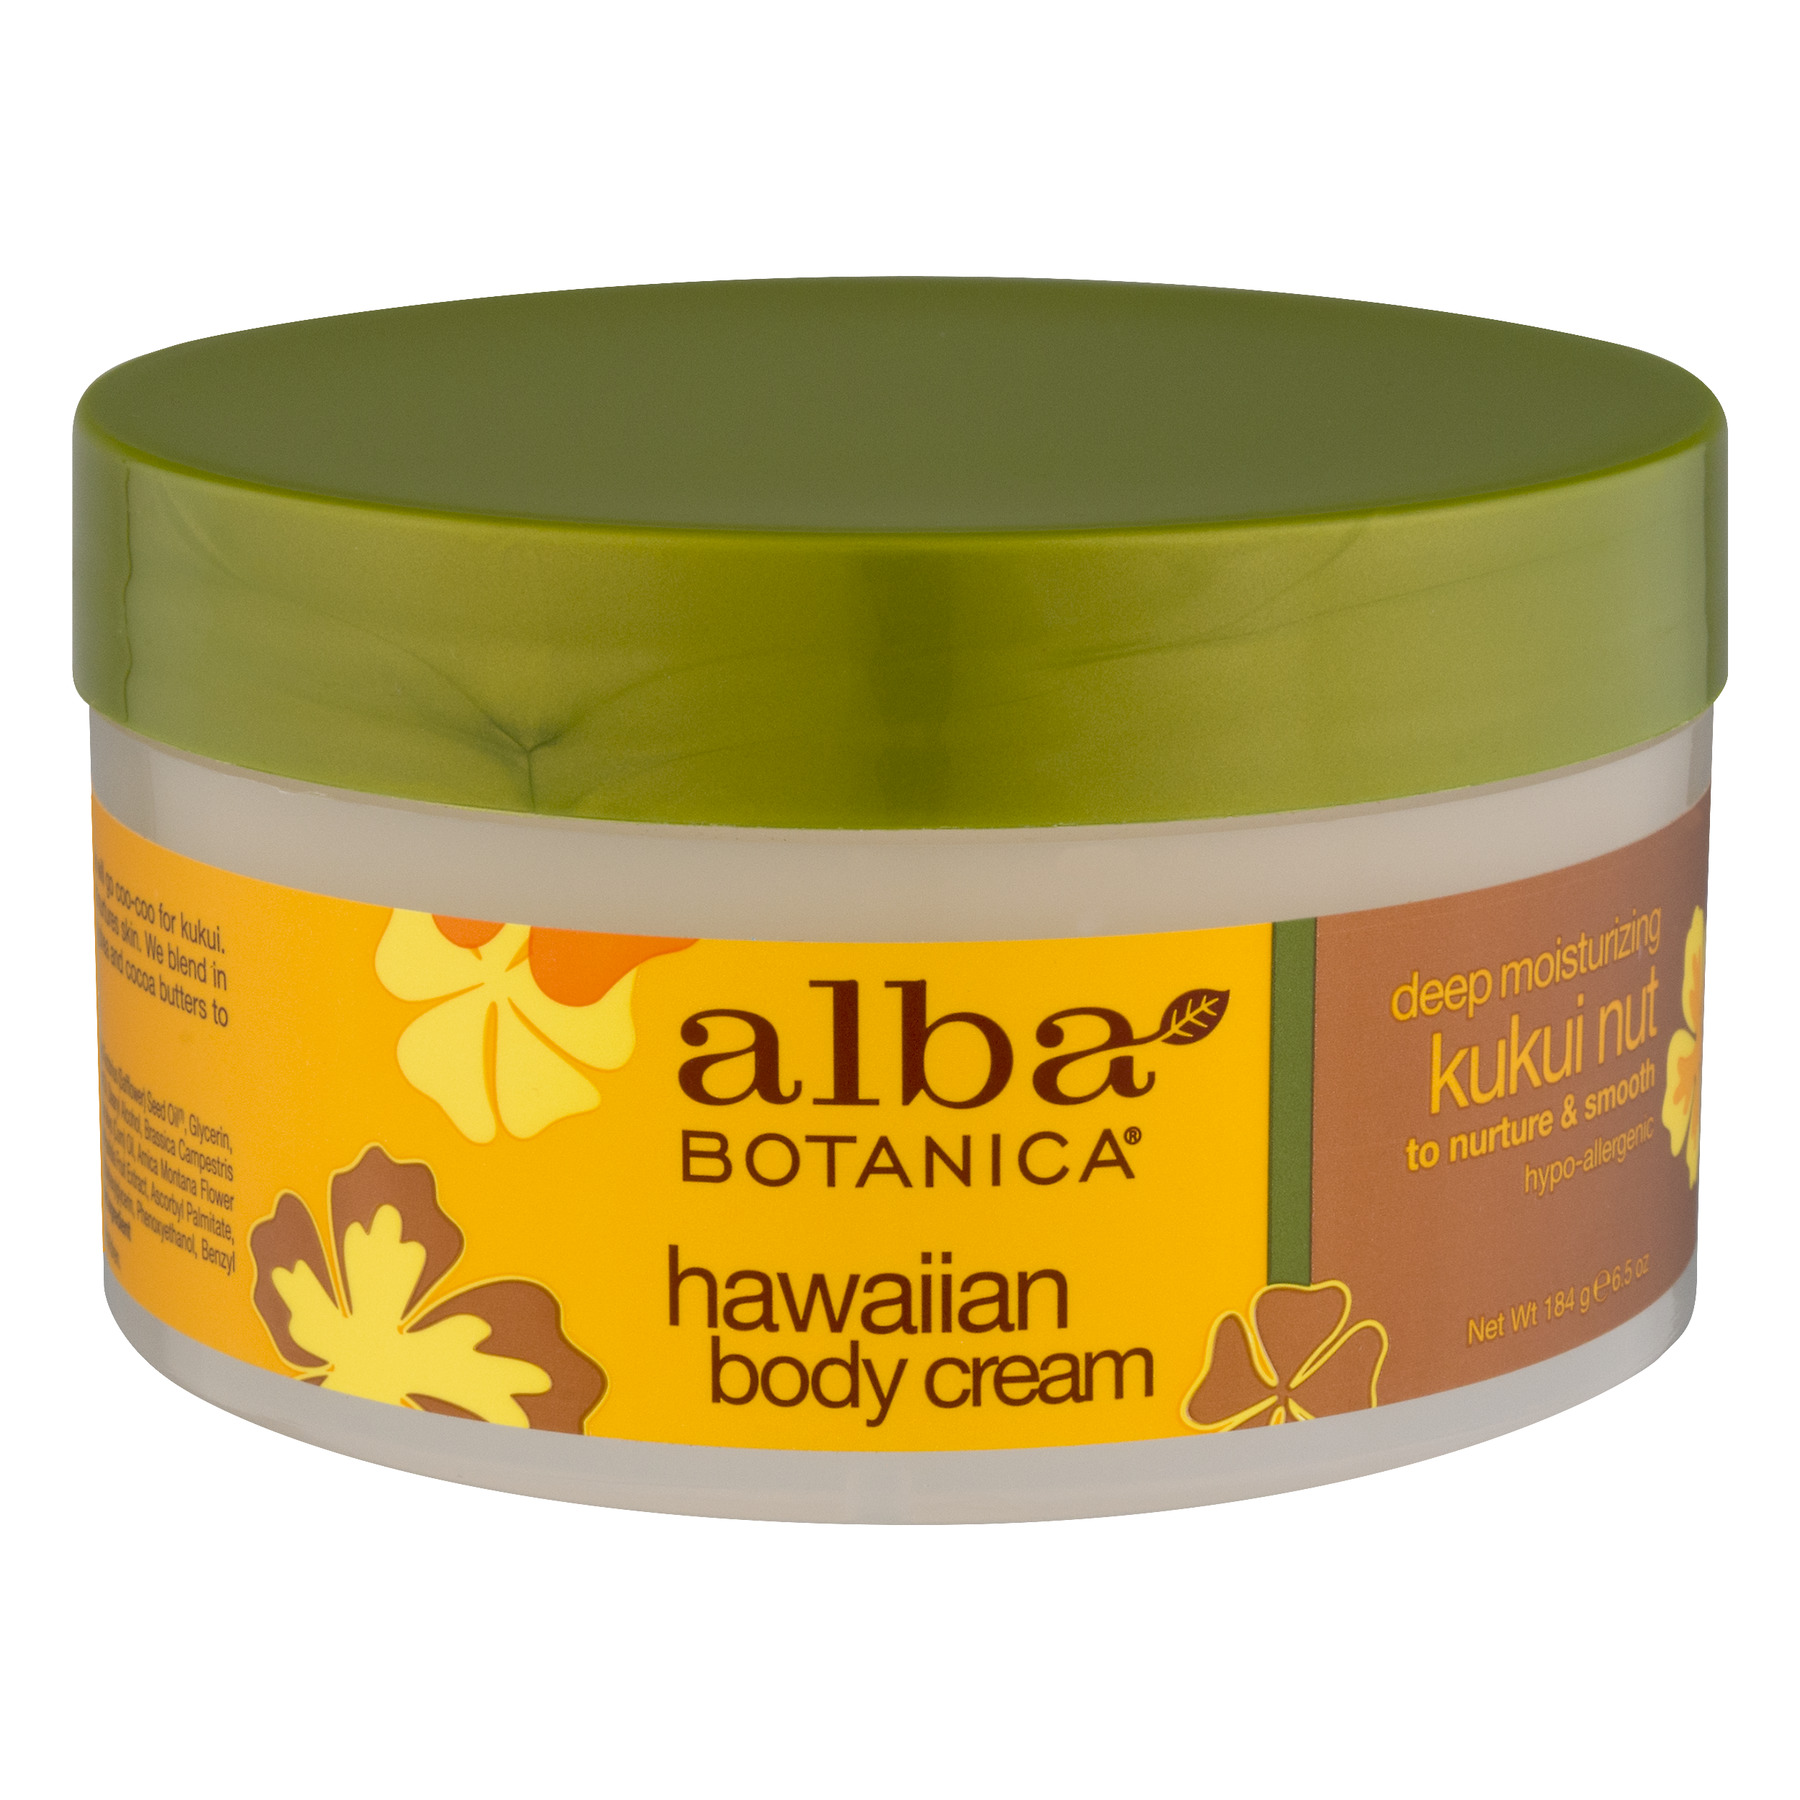 Alba Botanica Kukui Nut Body Cream, 6.5-Ounce Bottle (Pack of 2)